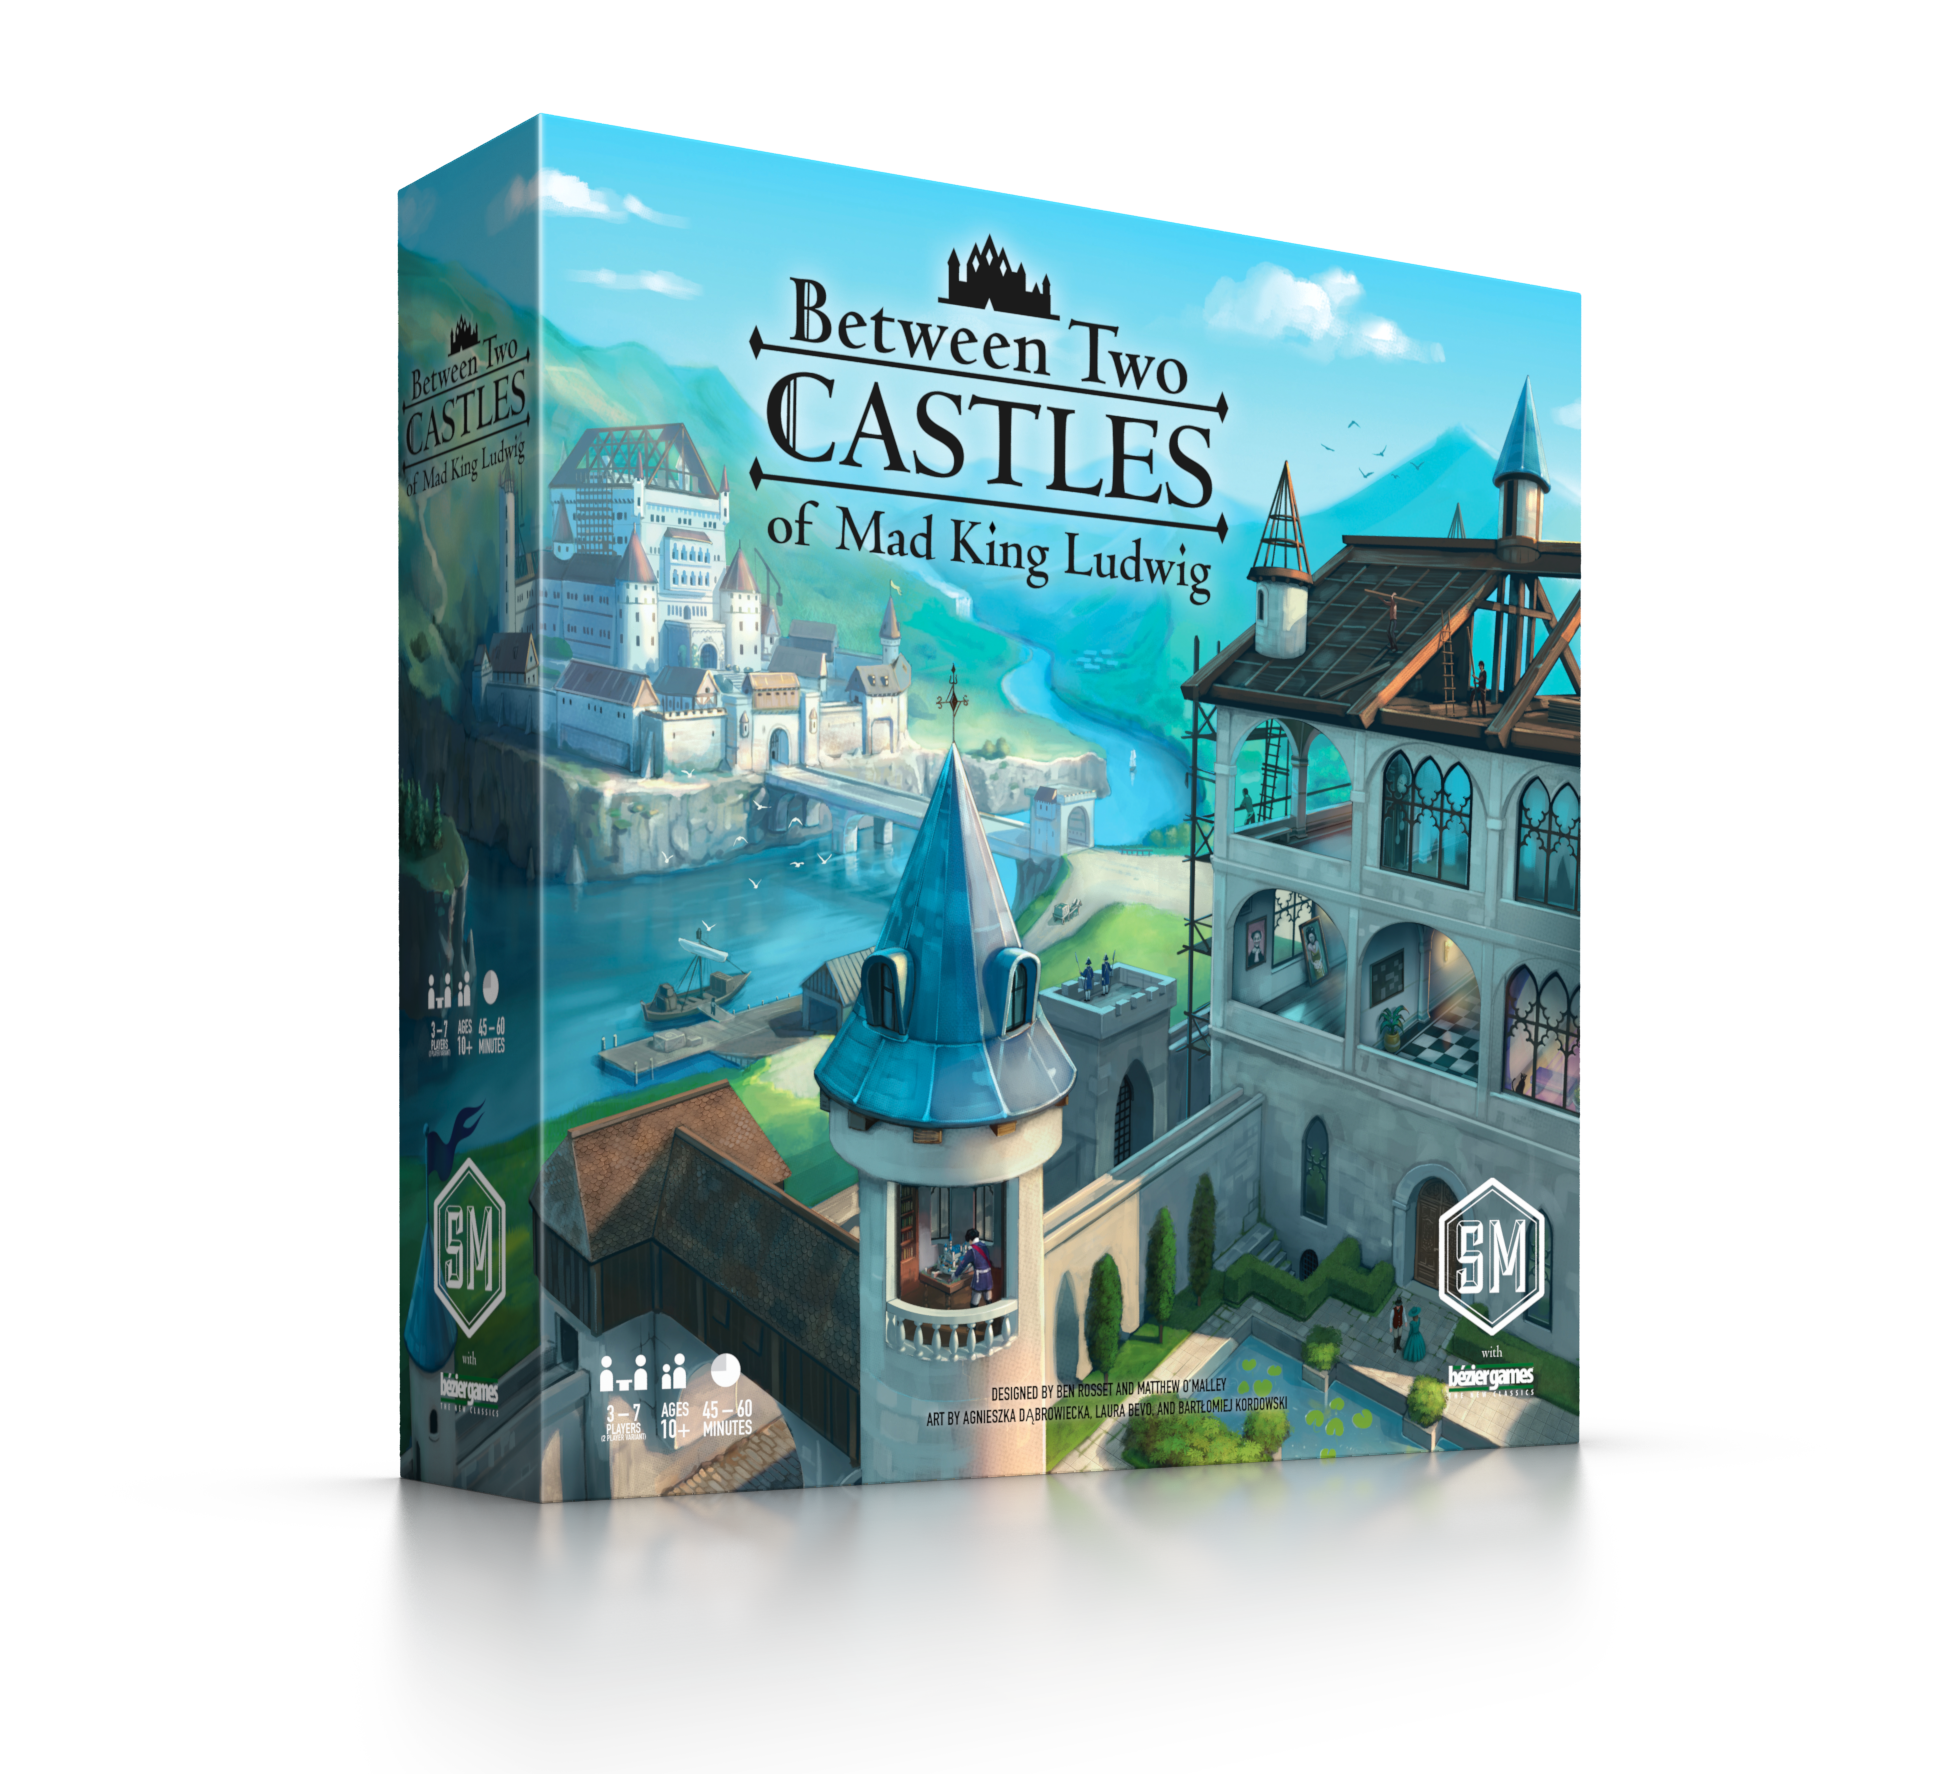 Transparent castle easy. Between two castles of